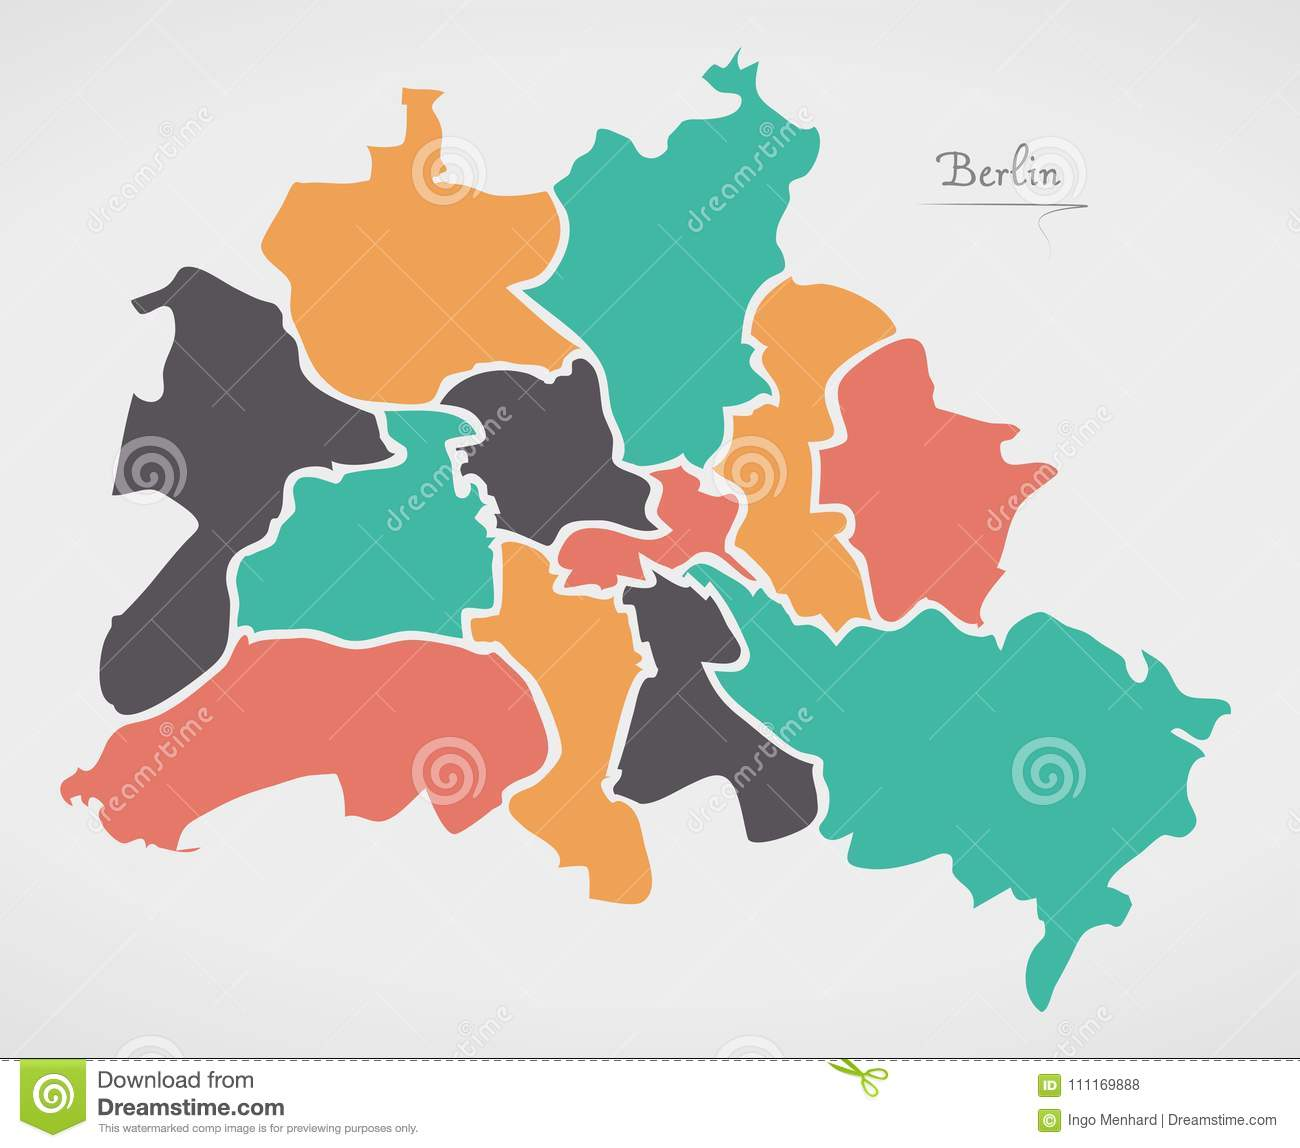 Berlin Map With Boroughs And Modern Round Shapes Stock ...